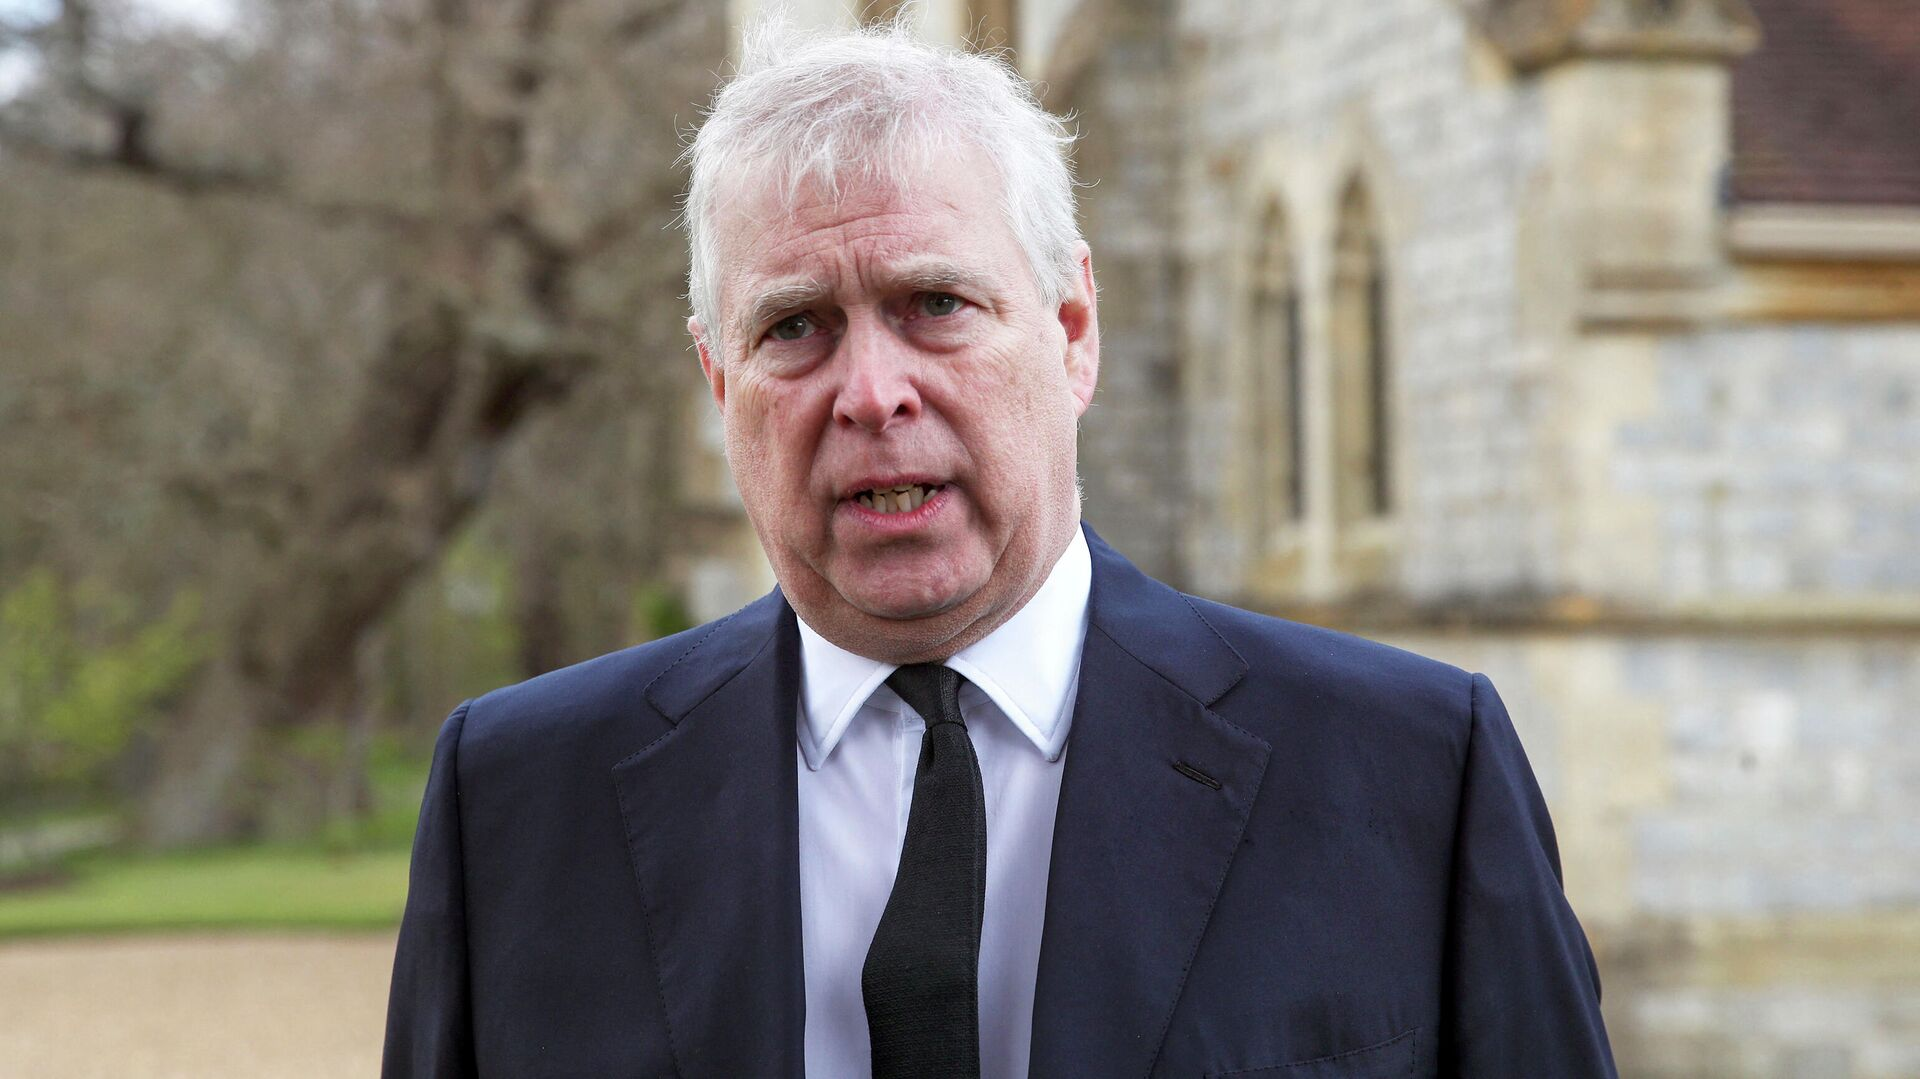 Britain's Prince Andrew, Duke of York, speaks during a television interview outside the Royal Chapel of All Saints in Windsor on April 11, 2021, two days after the death of his father Britain's Prince Philip, Duke of Edinburgh. - Sputnik International, 1920, 12.09.2021